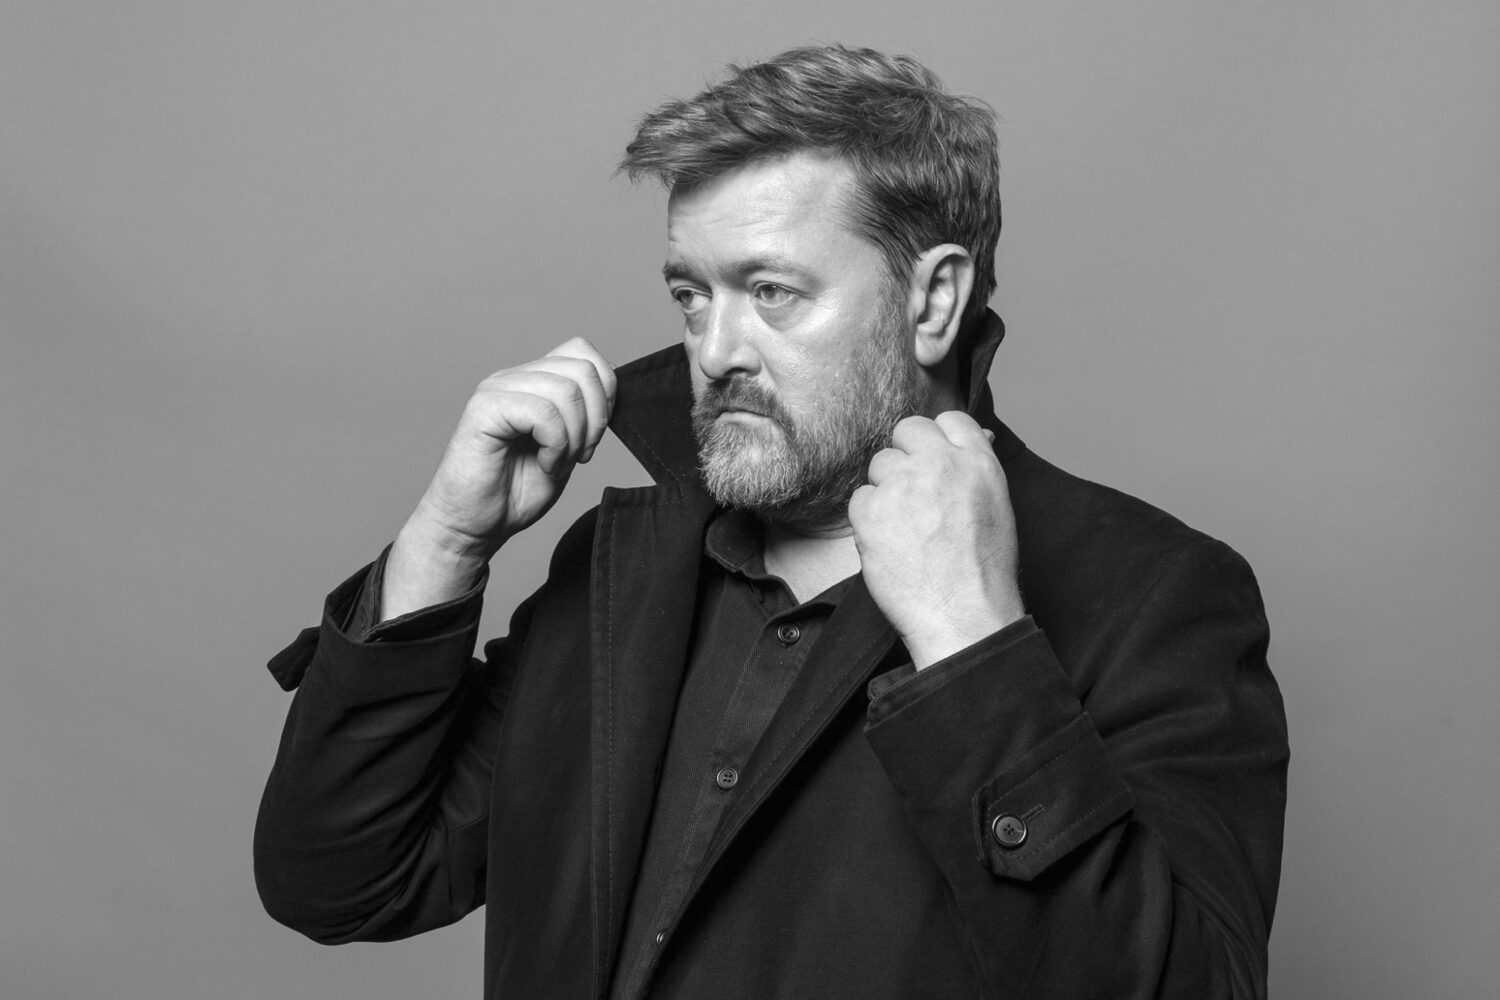 Go behind-the-scenes of Guy Garvey's Meltdown